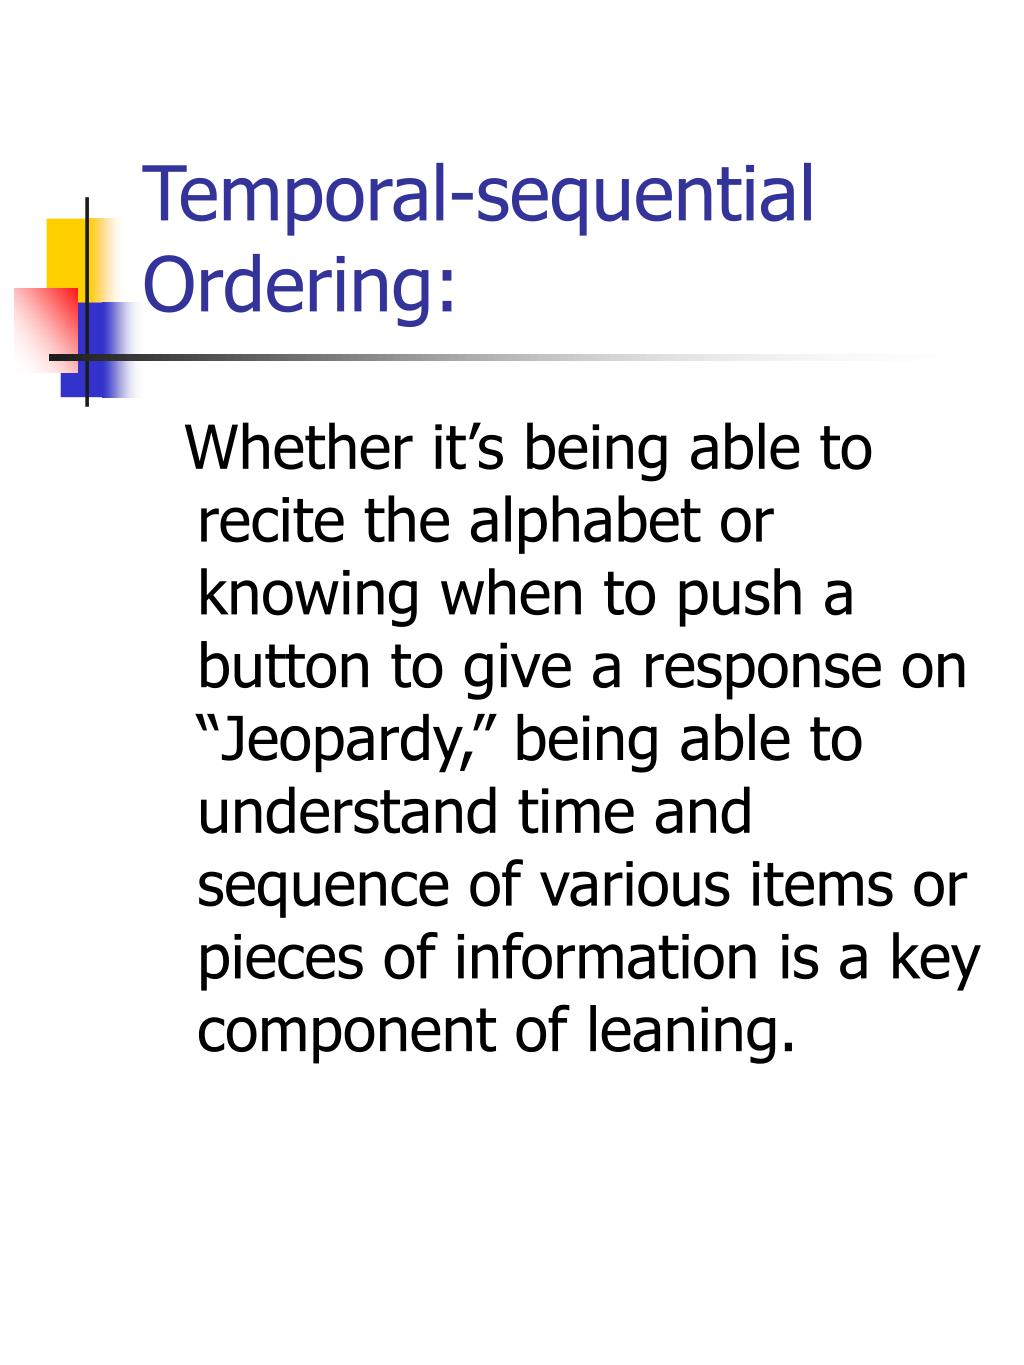 Temporal-sequential Ordering: